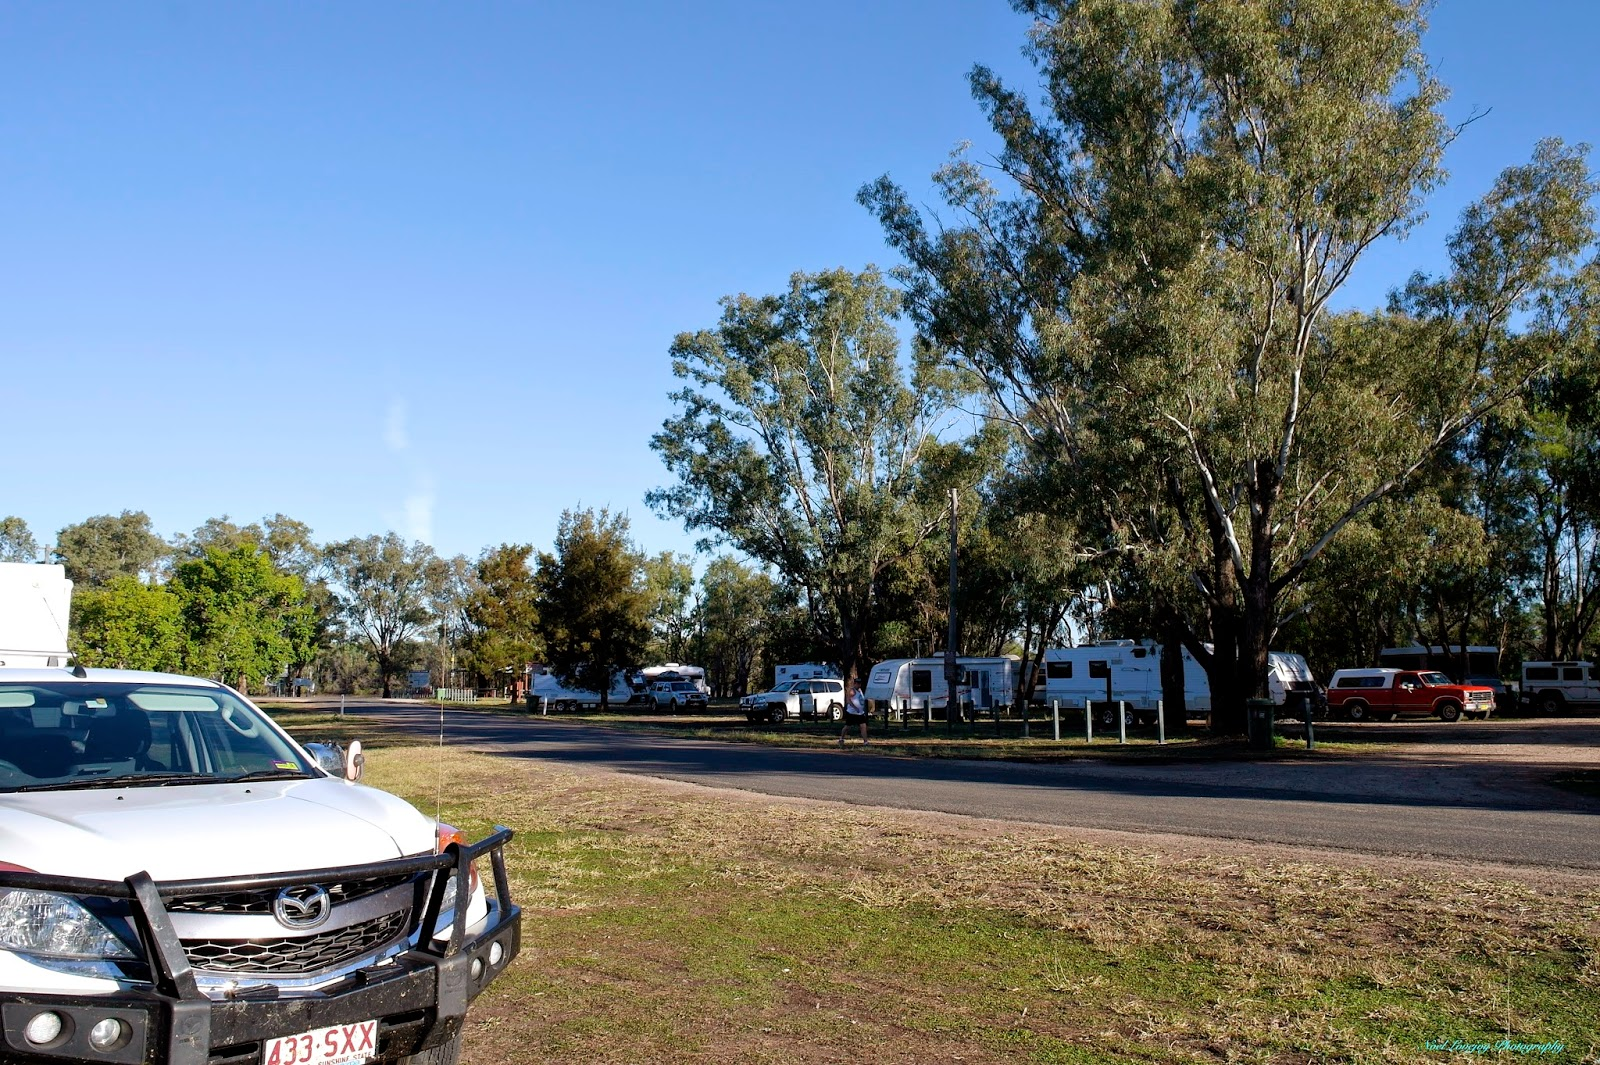 Chinchilla Australia  City pictures : Our camp at Chinchilla Weir. The caravans camped under the trees are ...